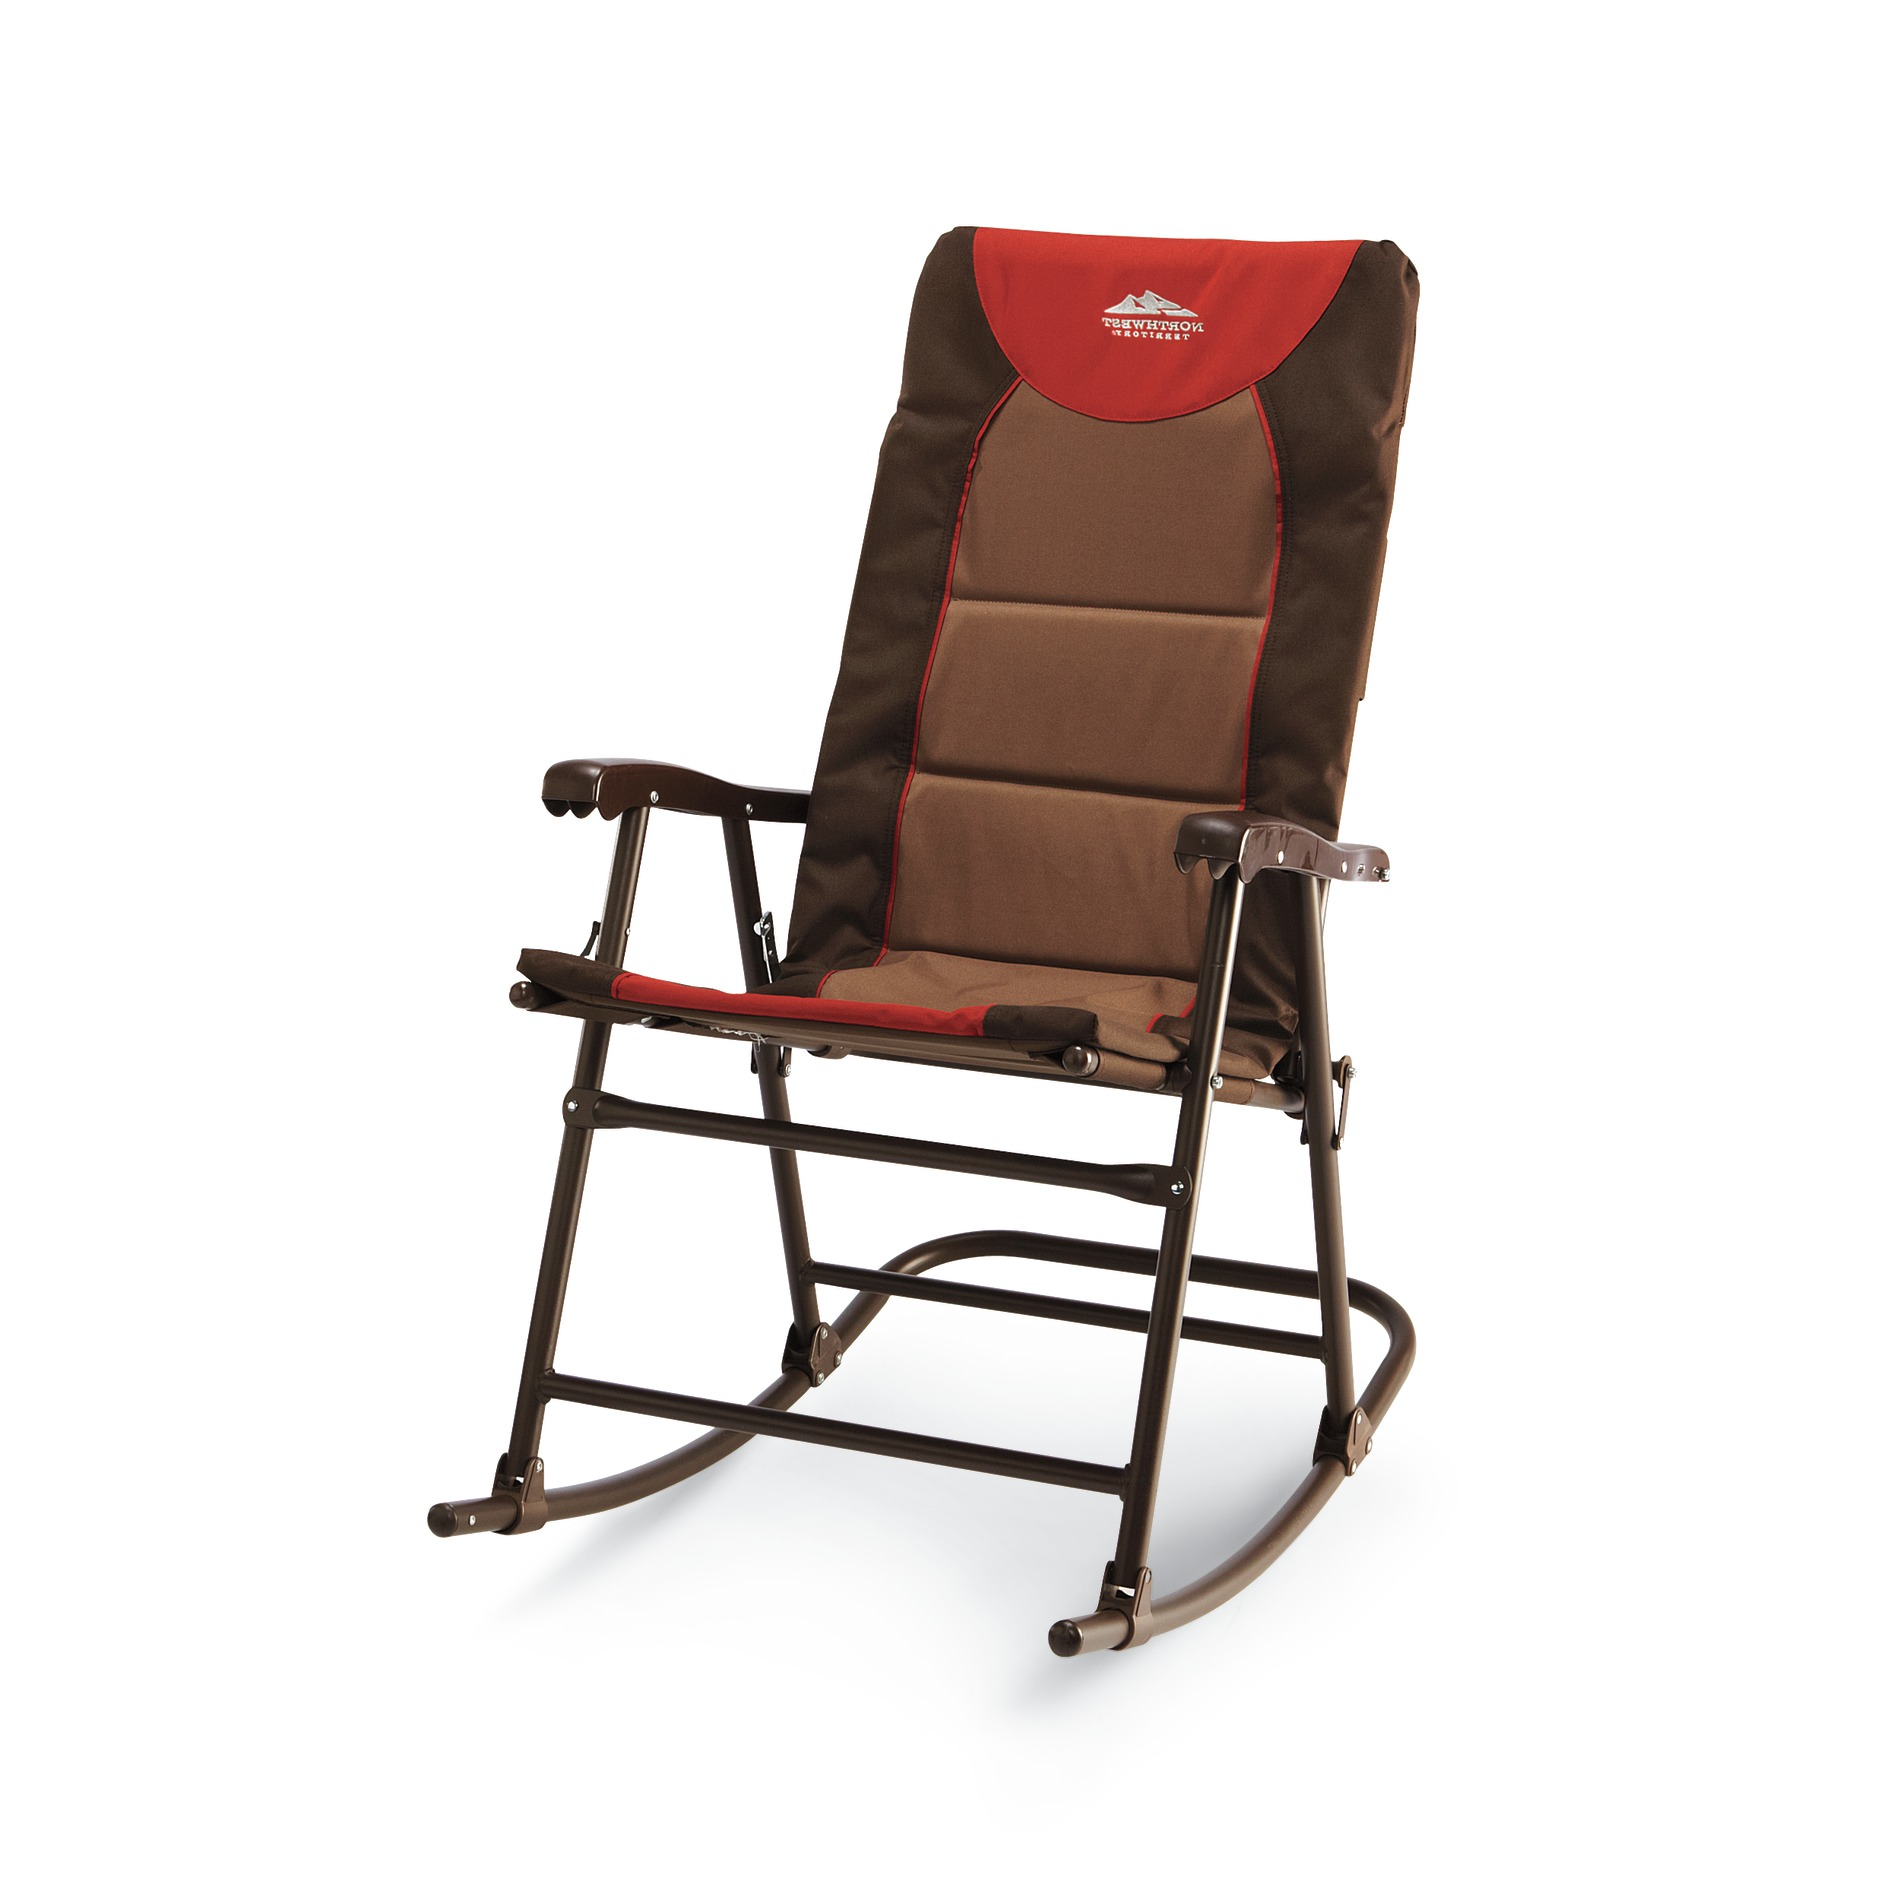 northwest territory chairs elegant chair covers and wedding decor camping tables kmart rocking